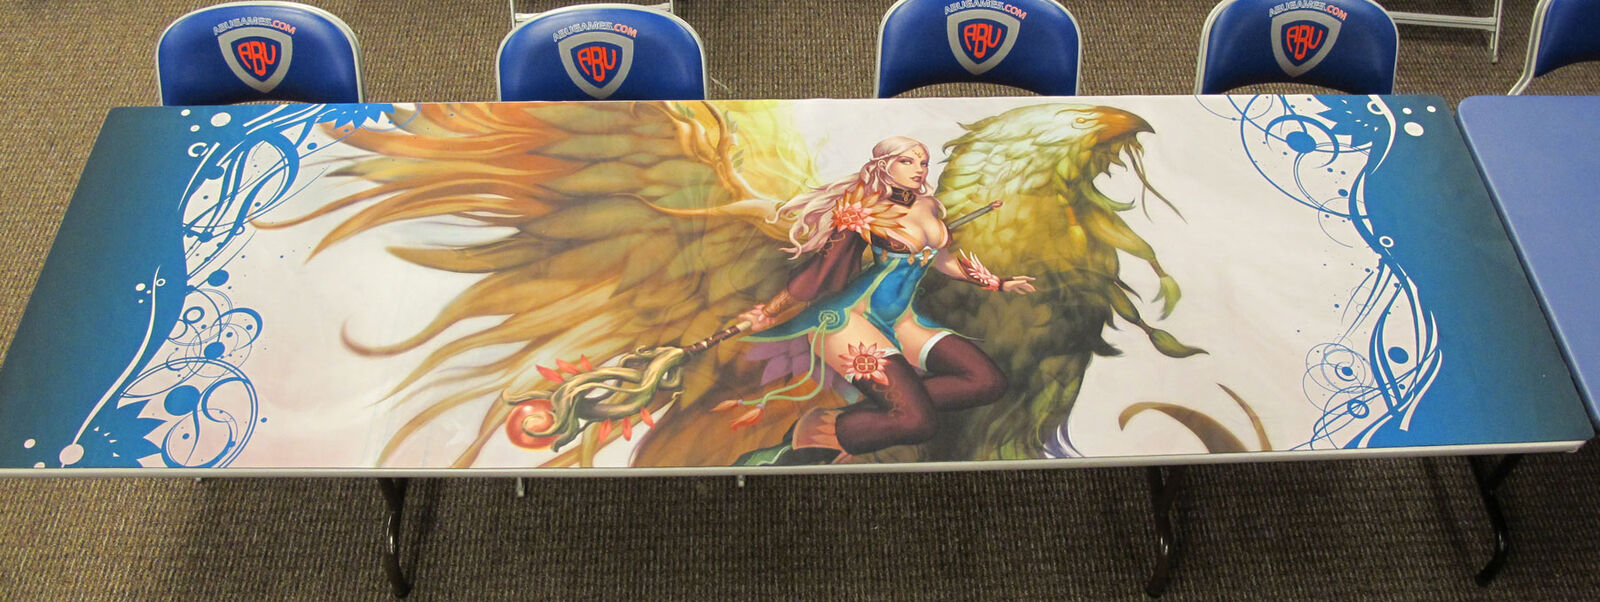 Life Table Playmat Game Plus Products Products Products   HCD GAMING SUPPLY BRAND NEW ABUGames c5e180